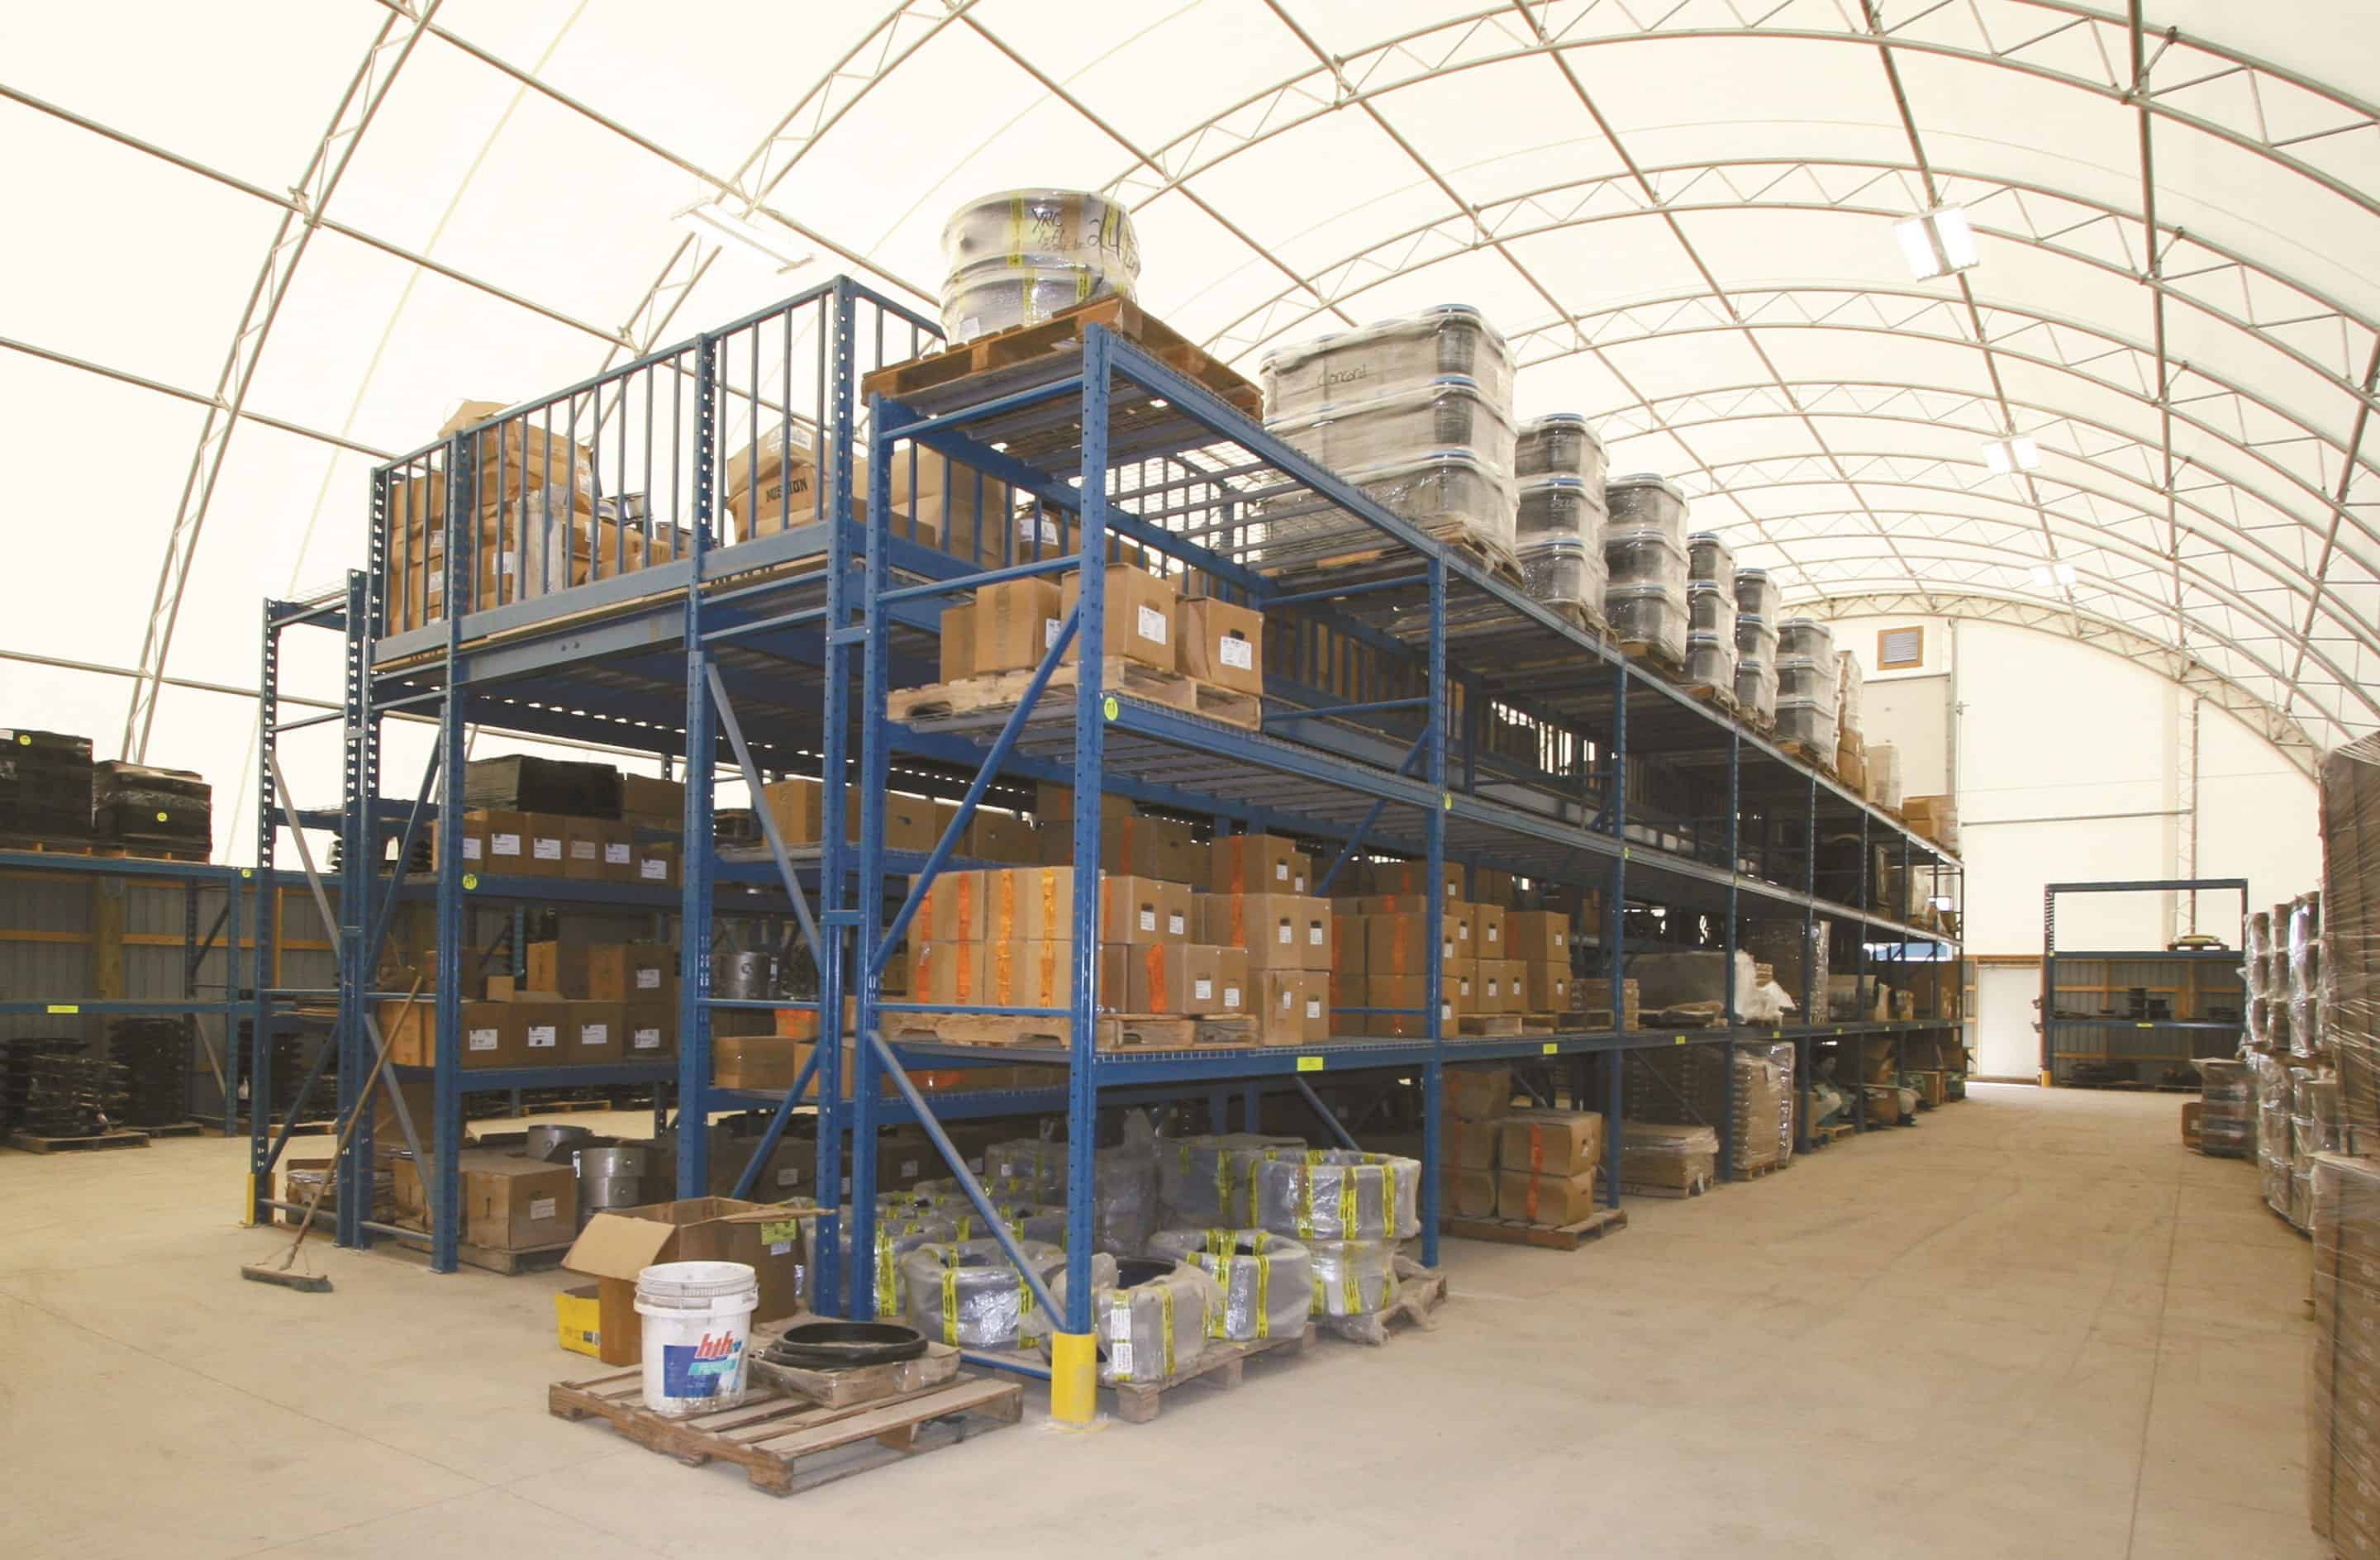 Fabric Buildings | Warehousing & Equipment Storage | Britespan